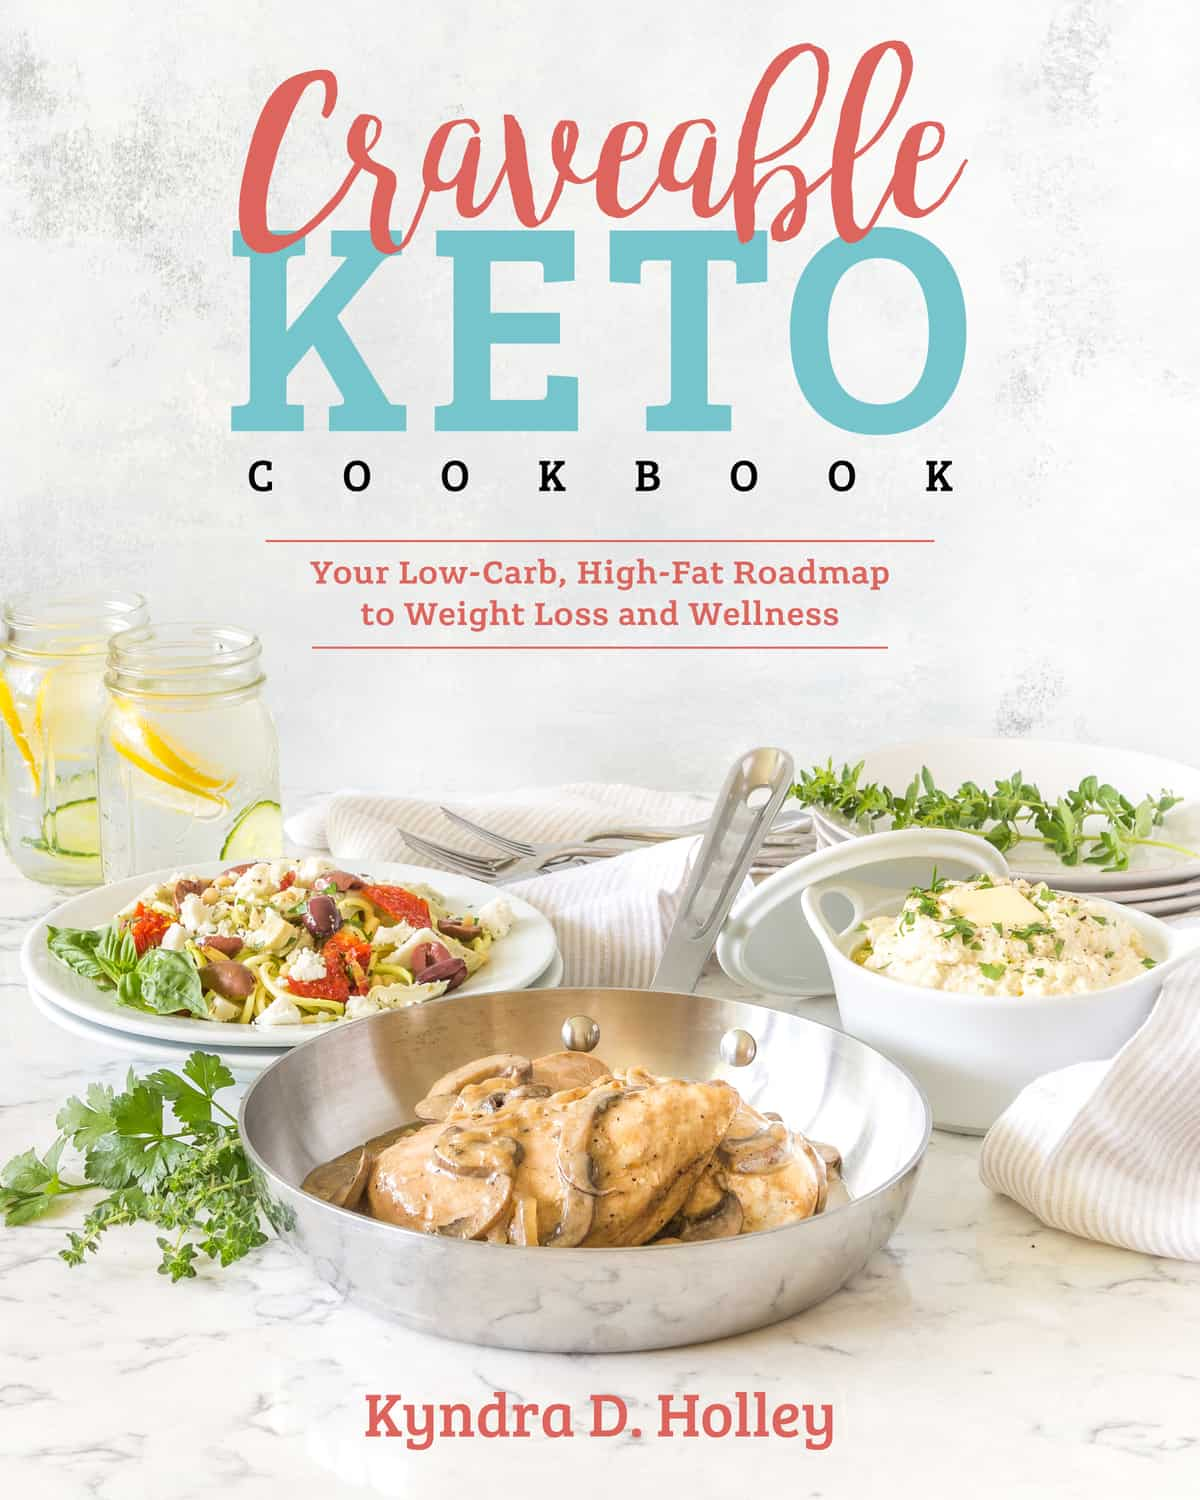 Craveable Keto Cookbook by Kyndra Holley